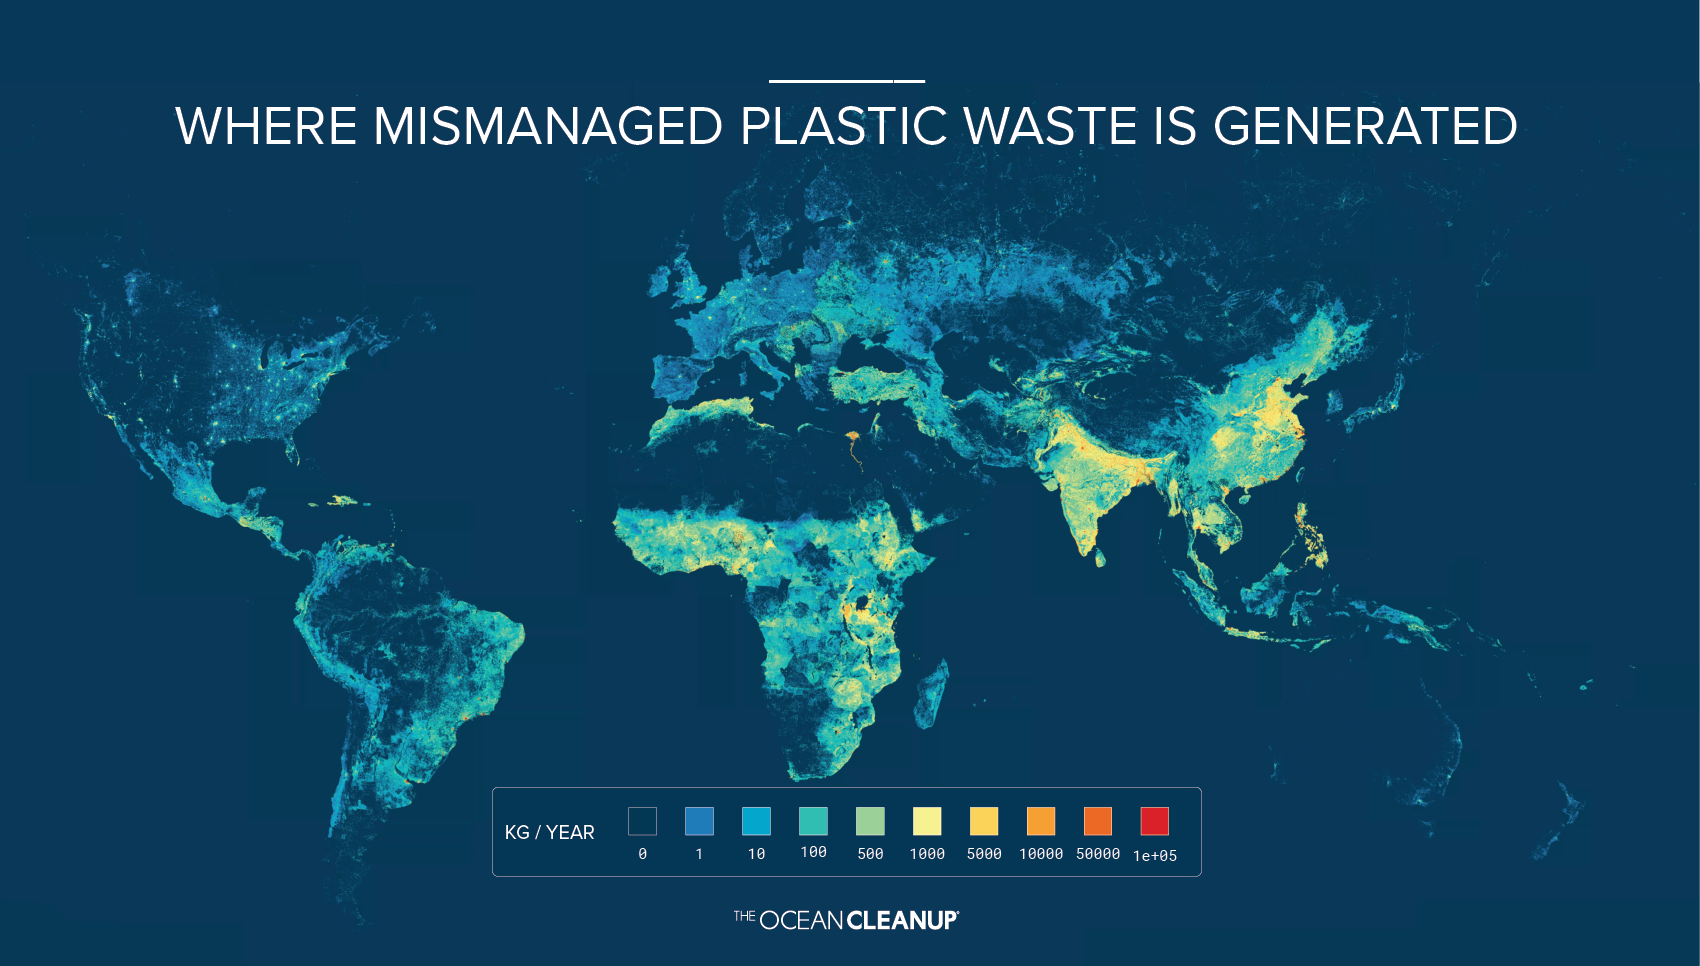 A visual showing where plastic waste leaks into the environment